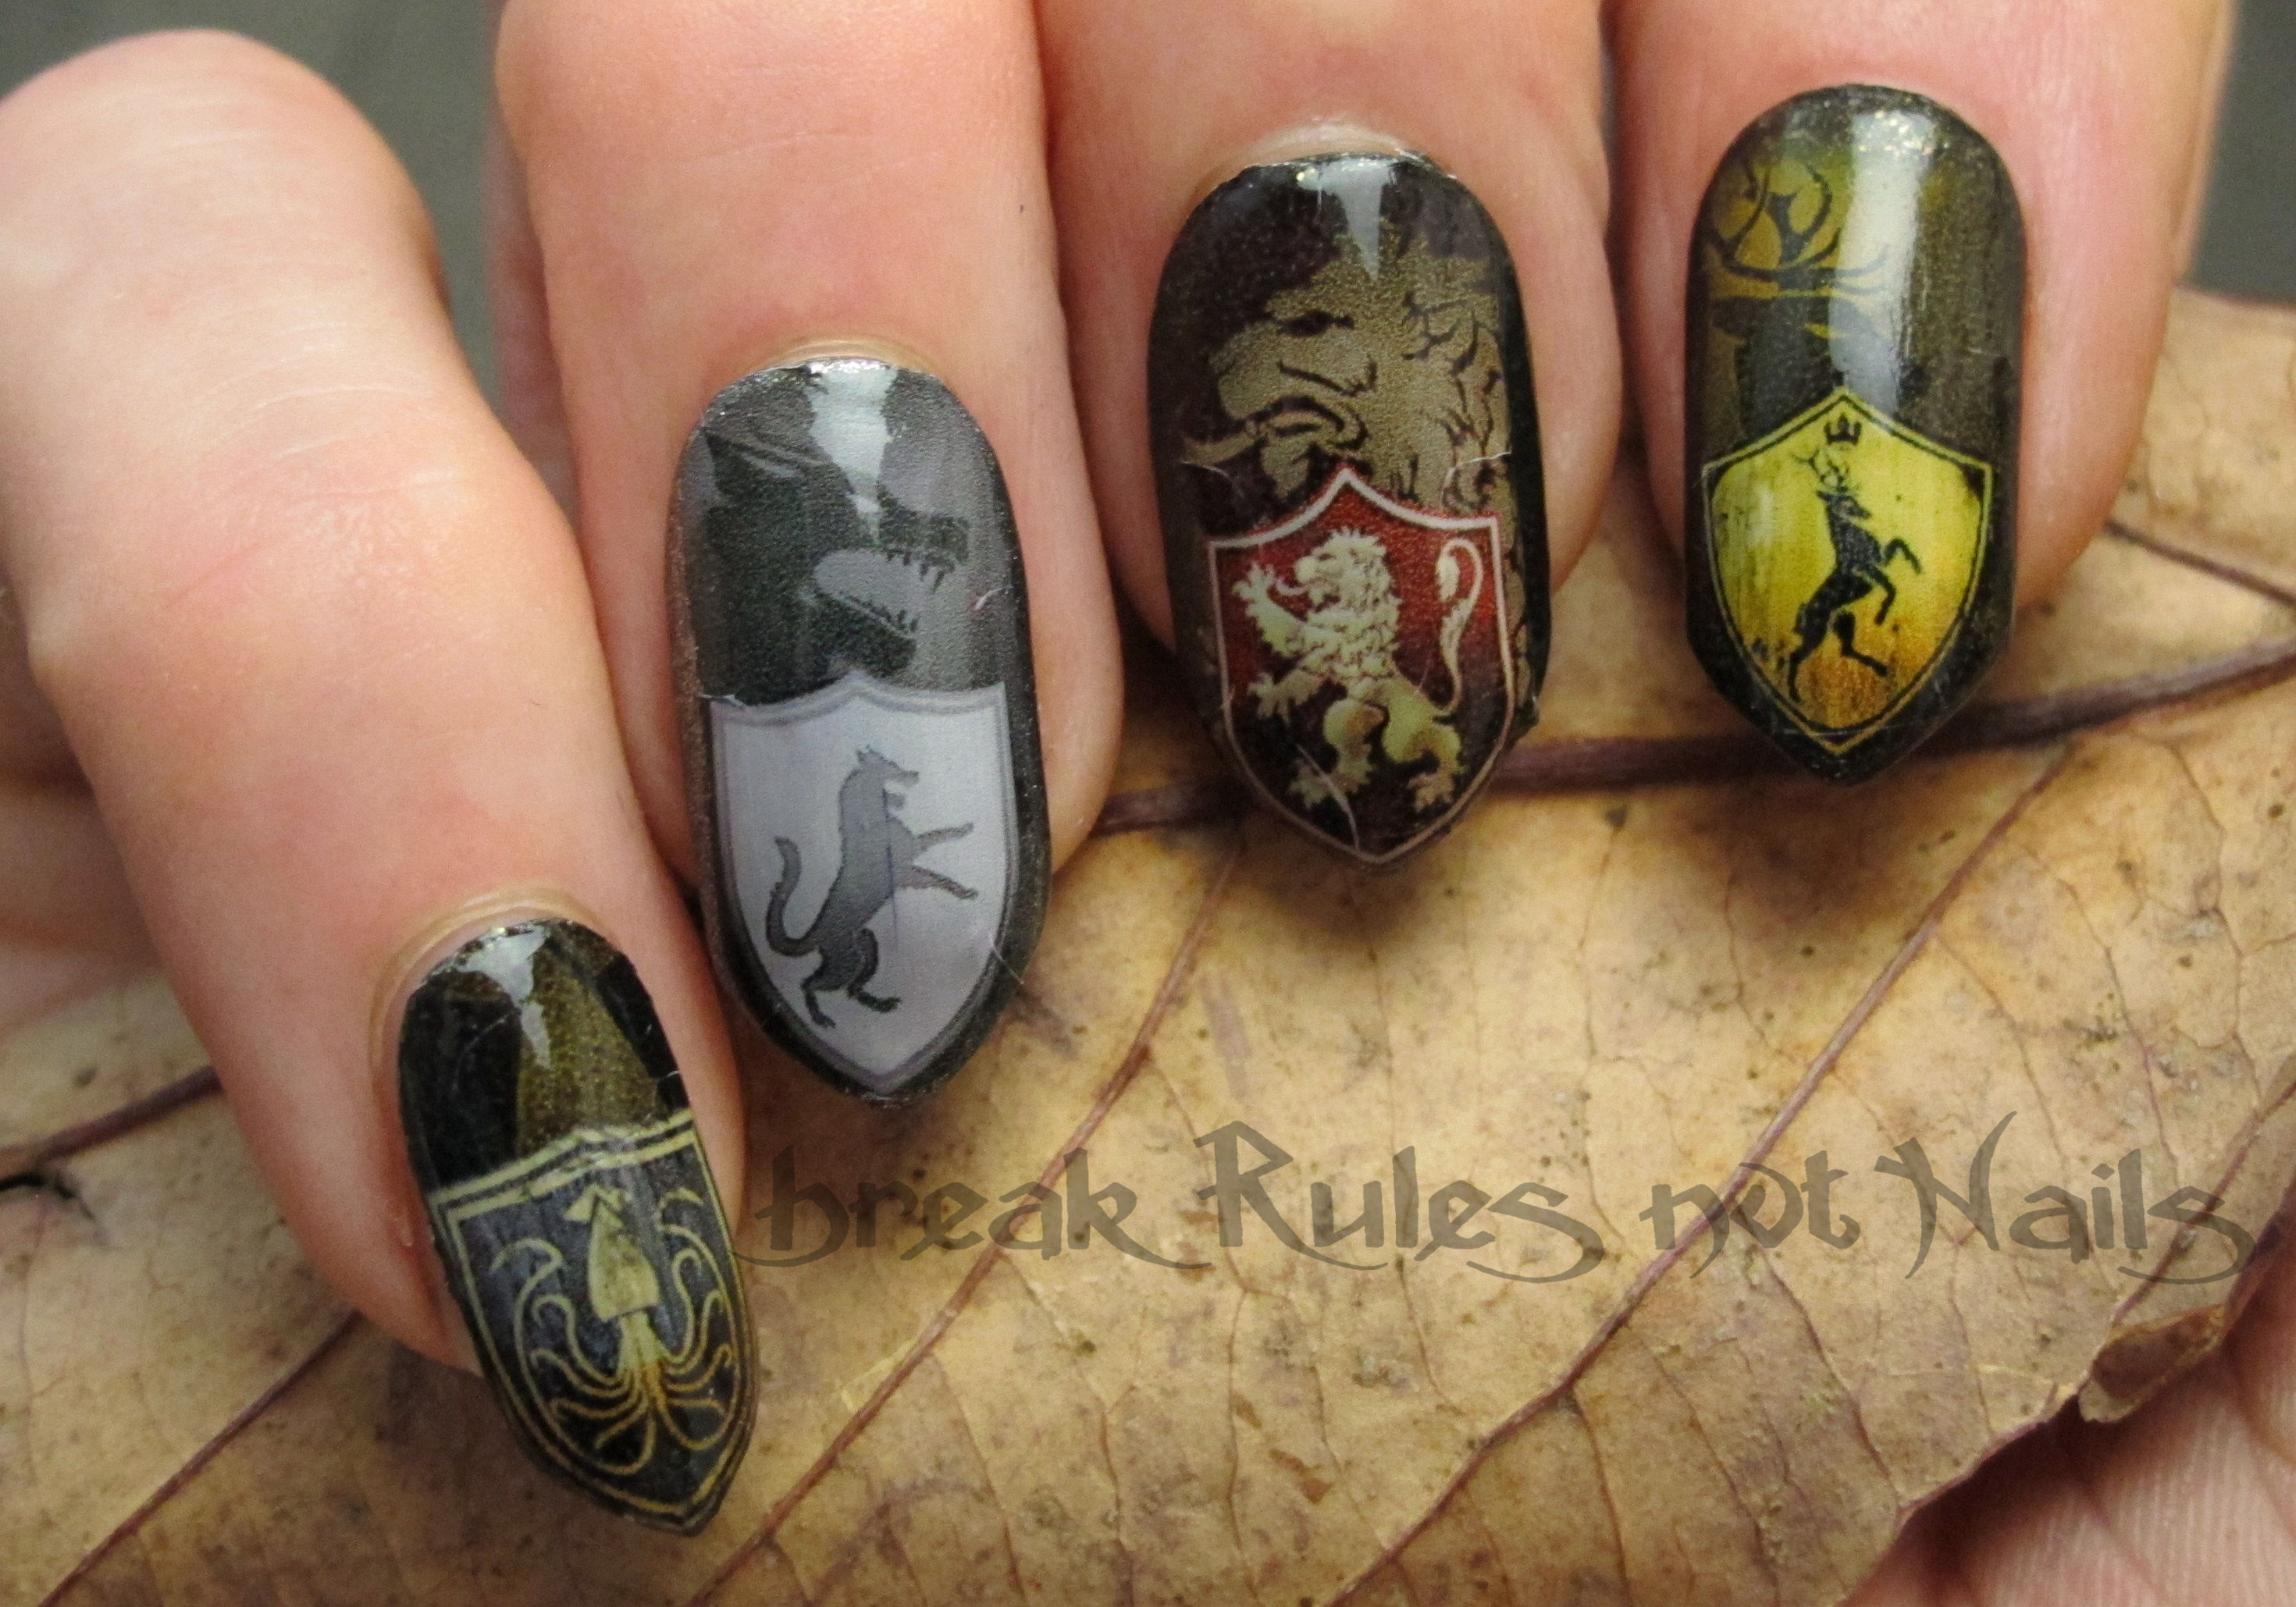 Game of thrones take 2 break rules not nails game of thrones 2 prinsesfo Images